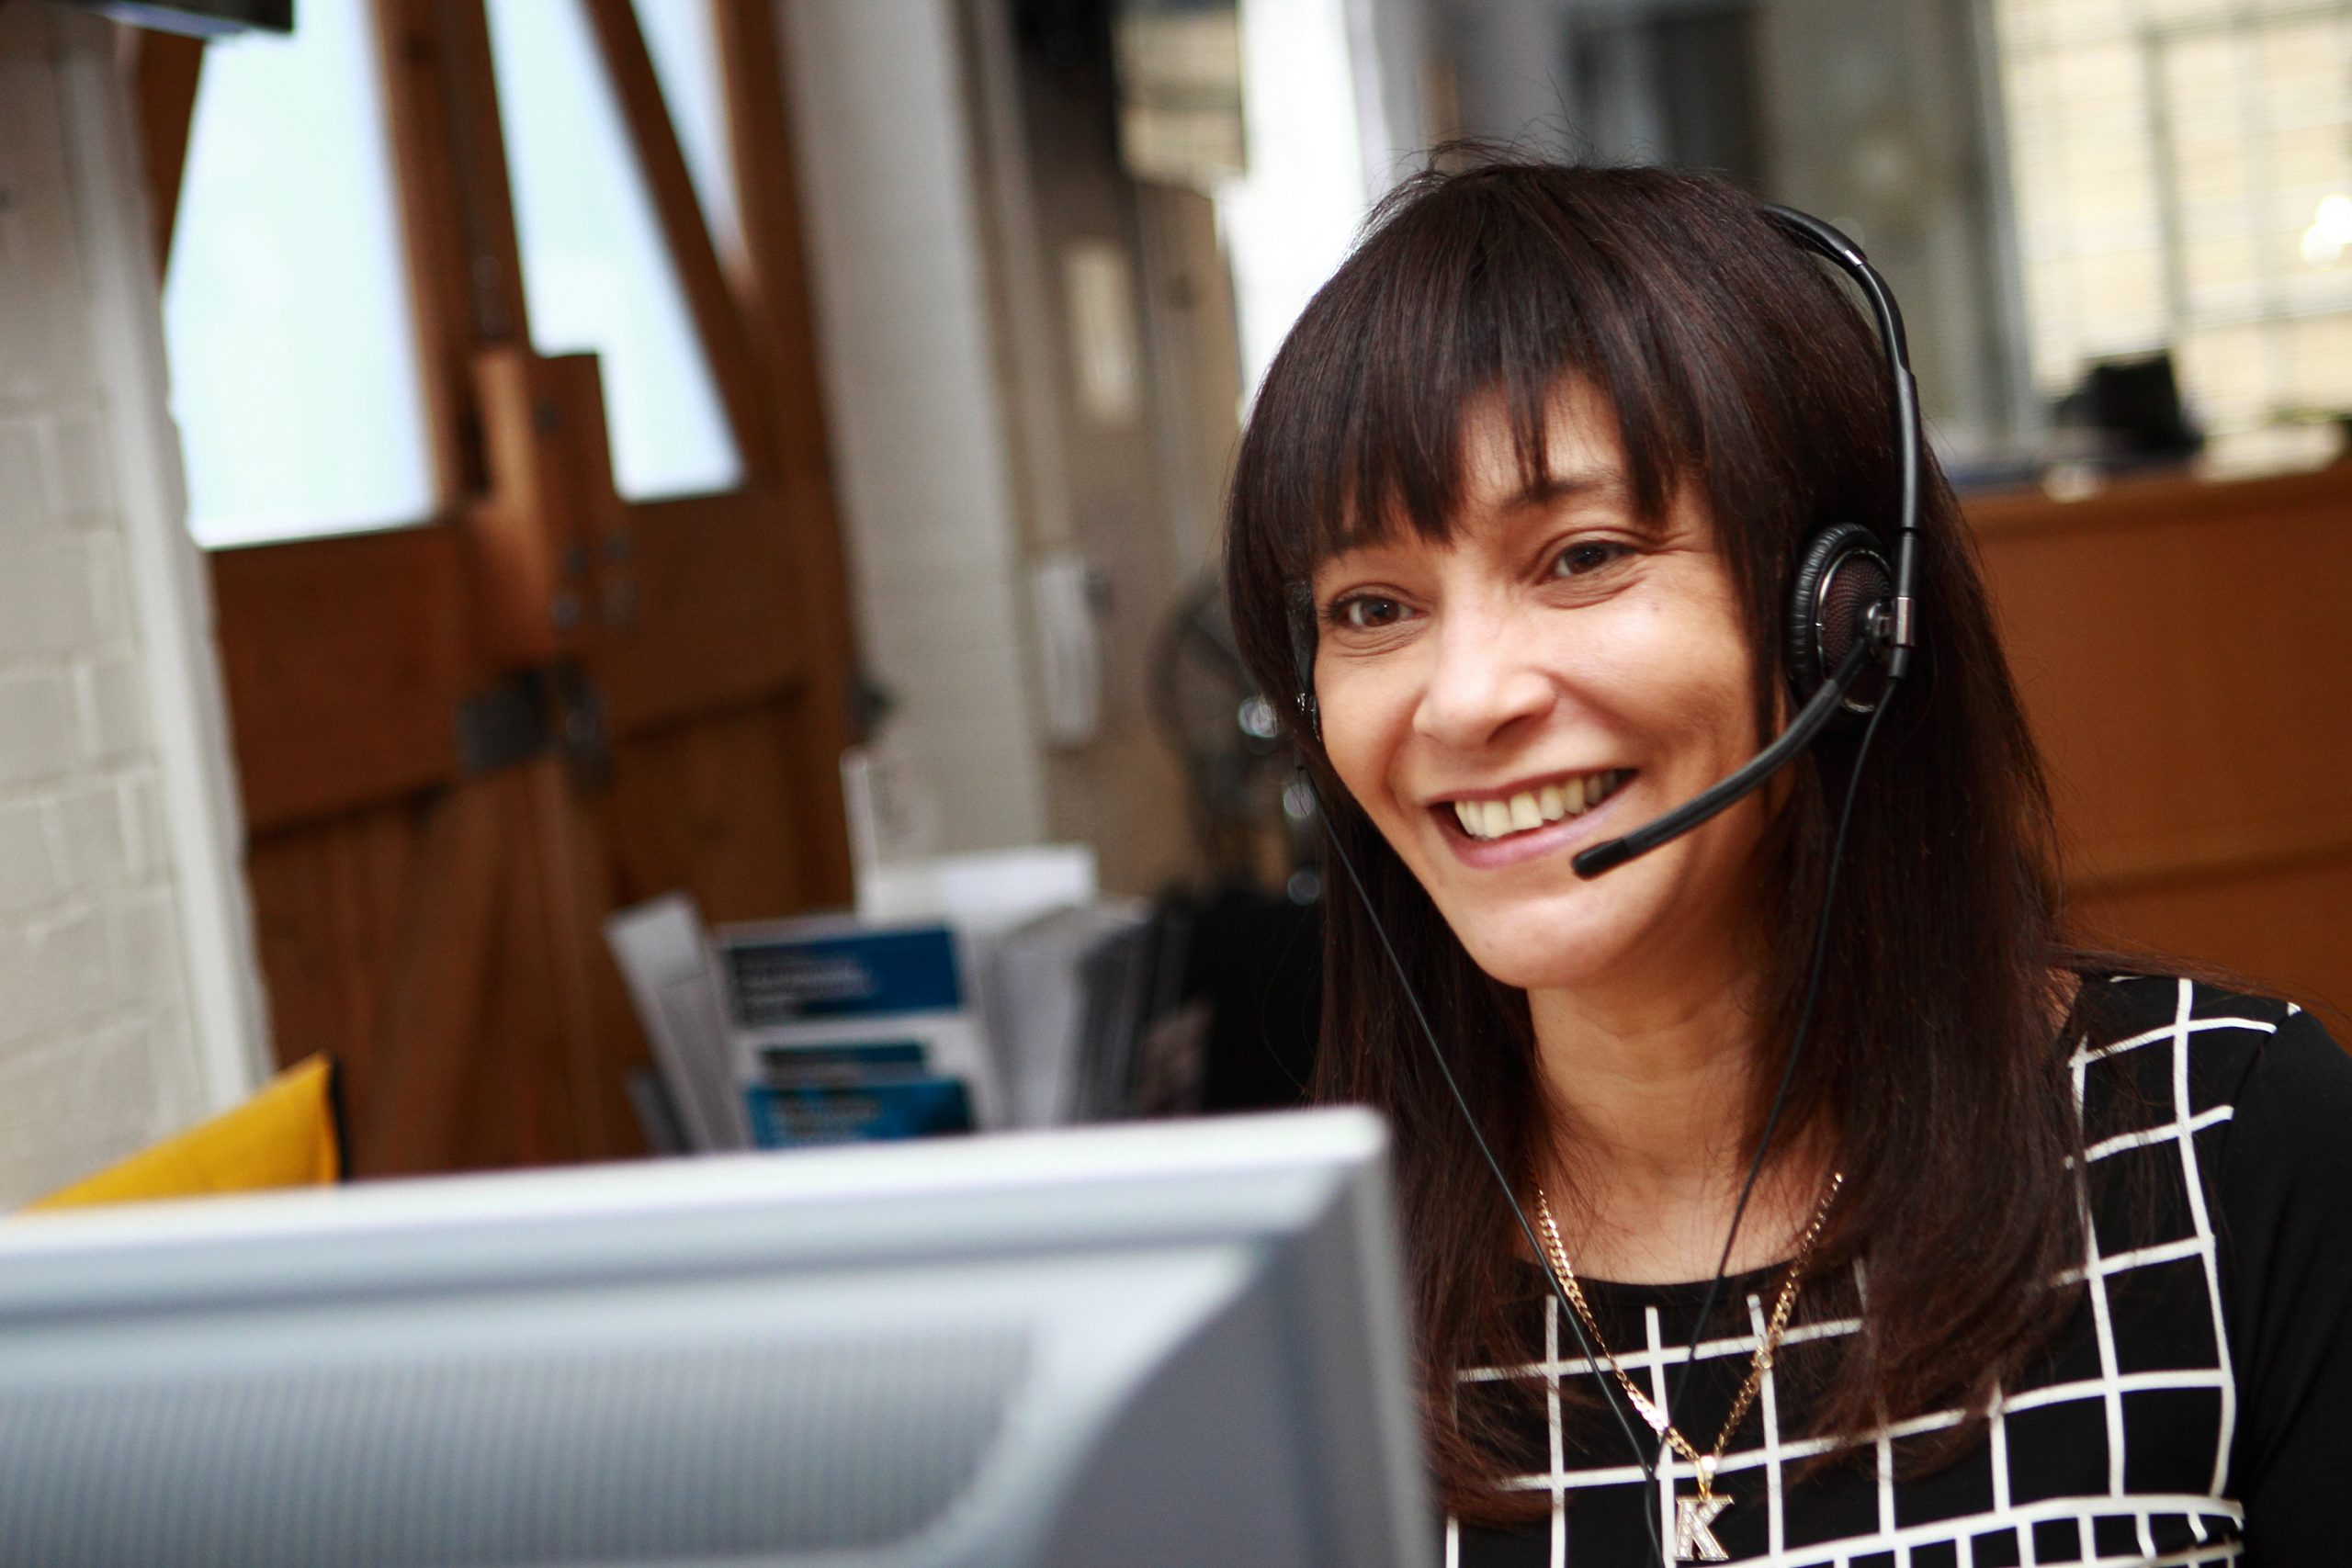 Image of woman using headset